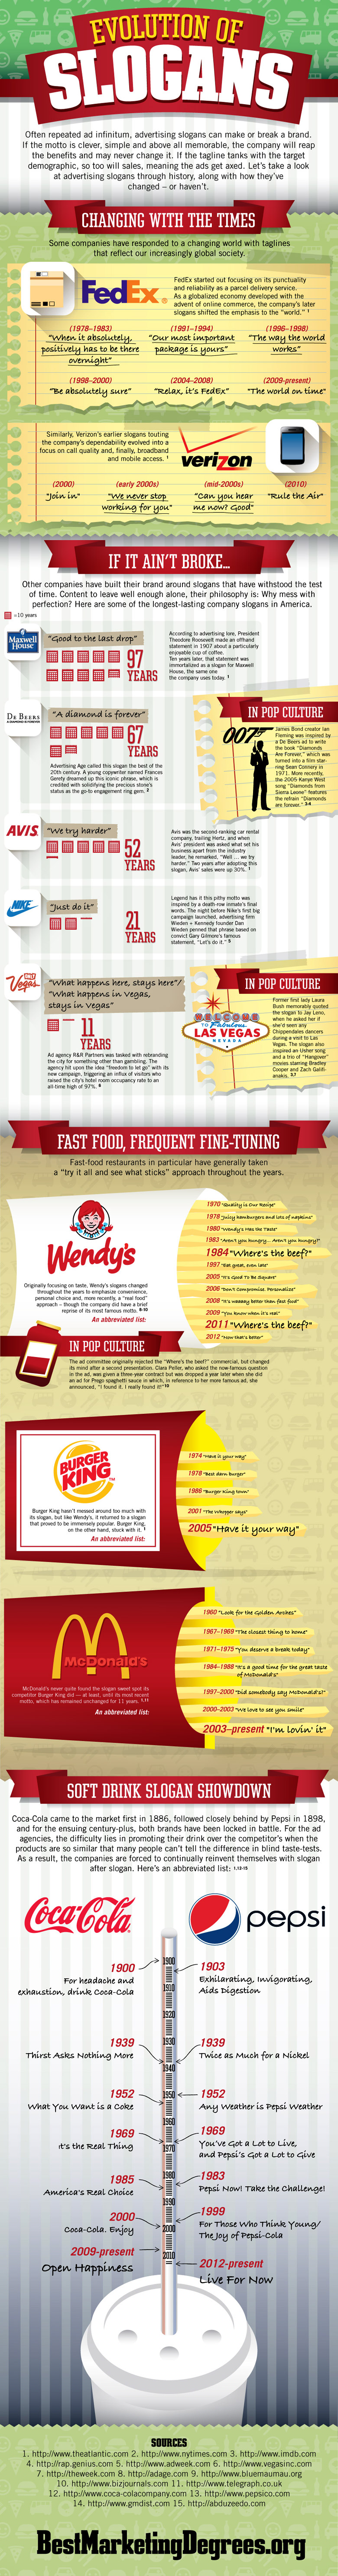 Evolution Of Famous Ad Slogans (Infographic)